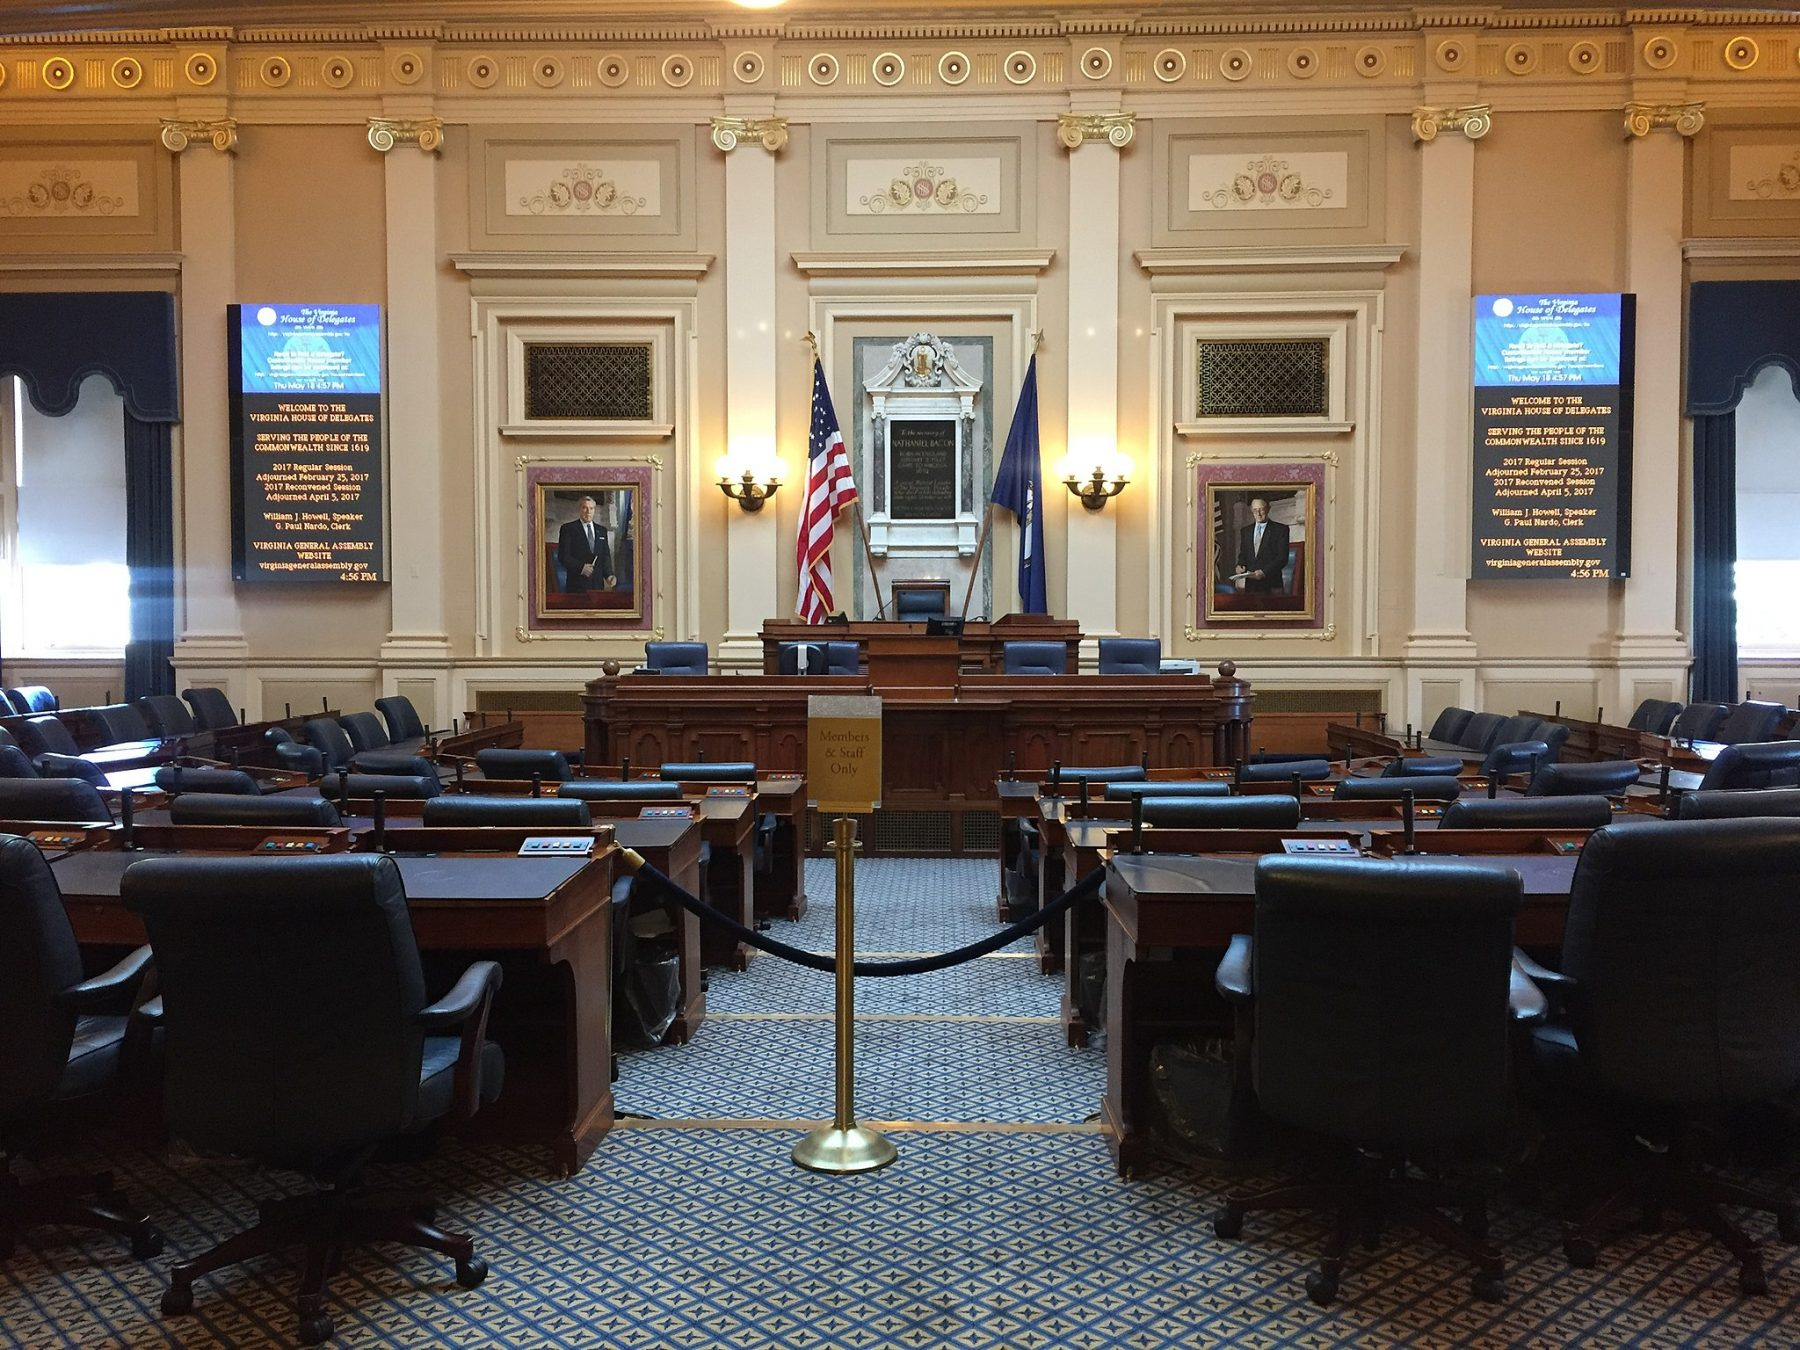 An image showing an empty Virginia House of Delegates Chamber in 2017.